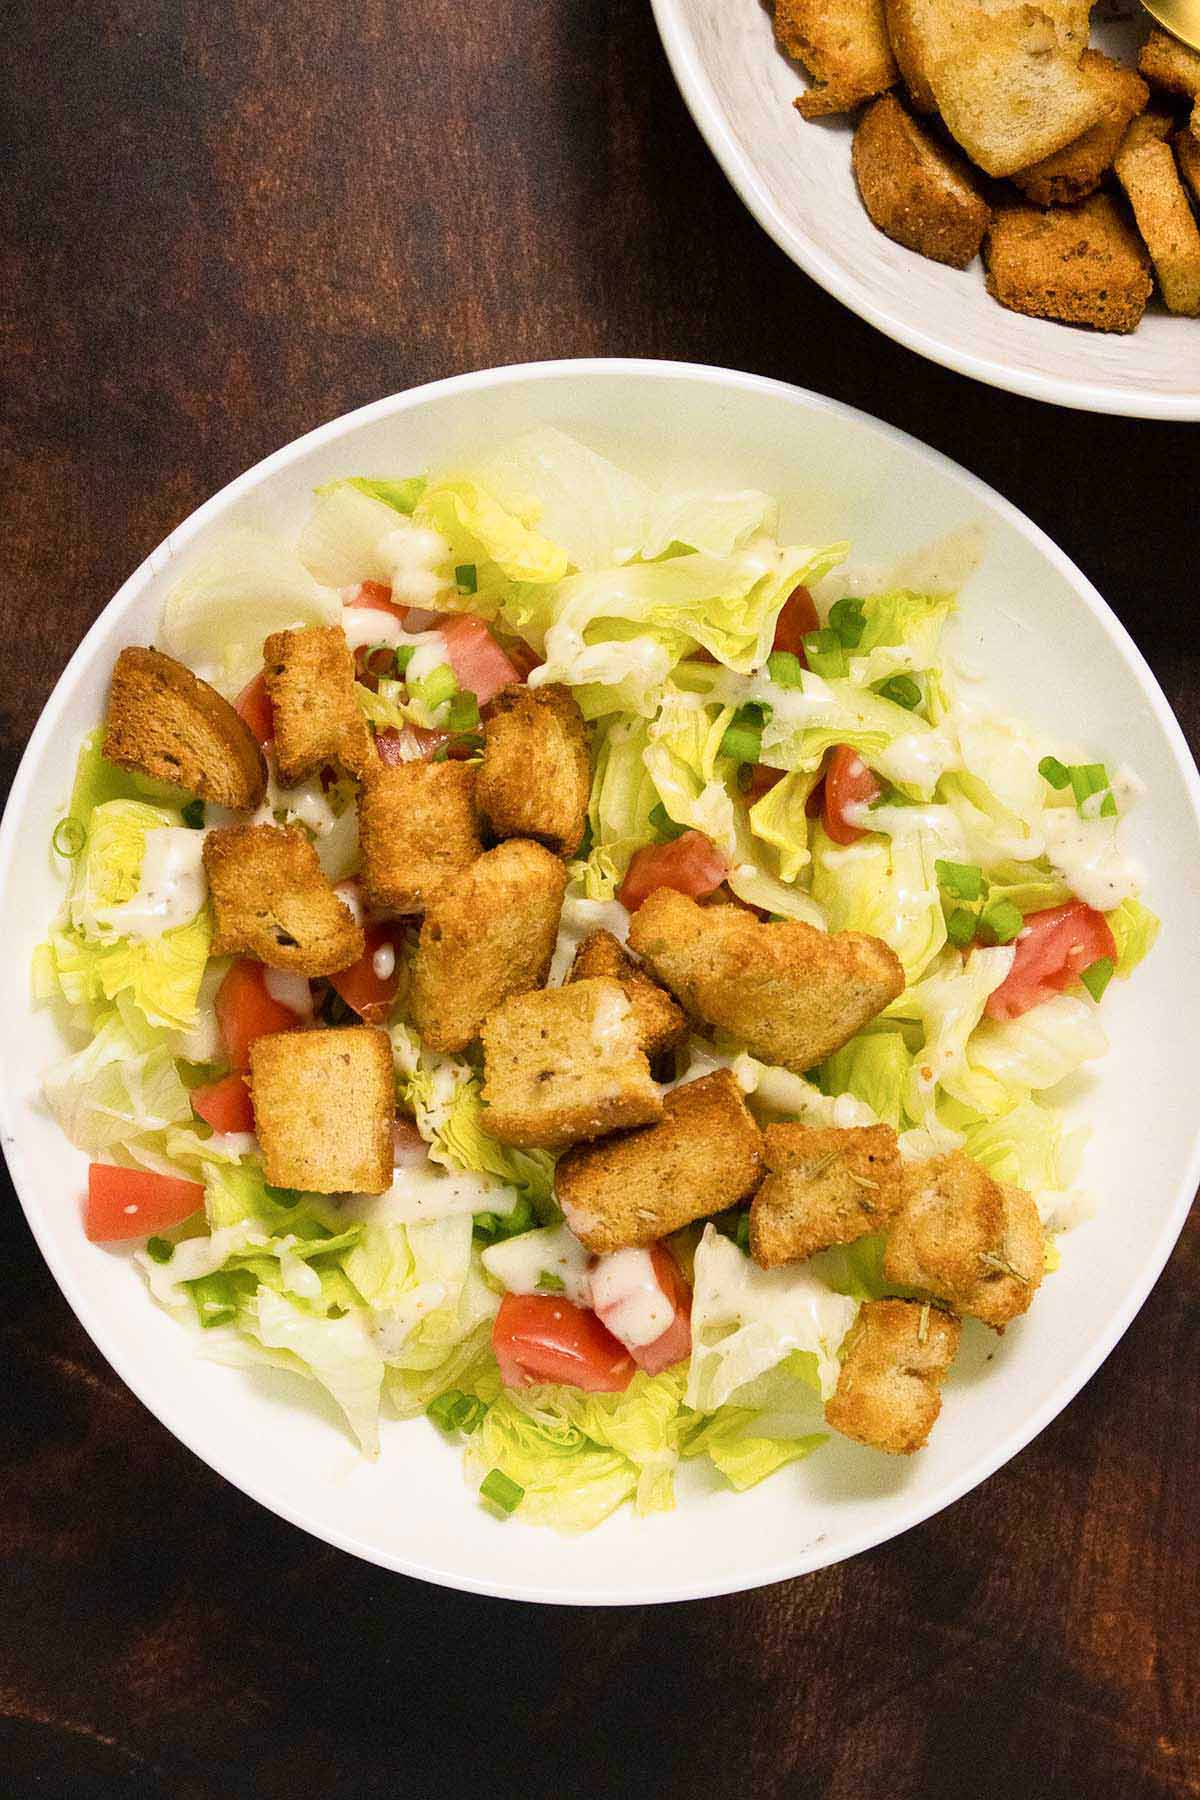 salad topped with creamy dressing and air fryer croutons